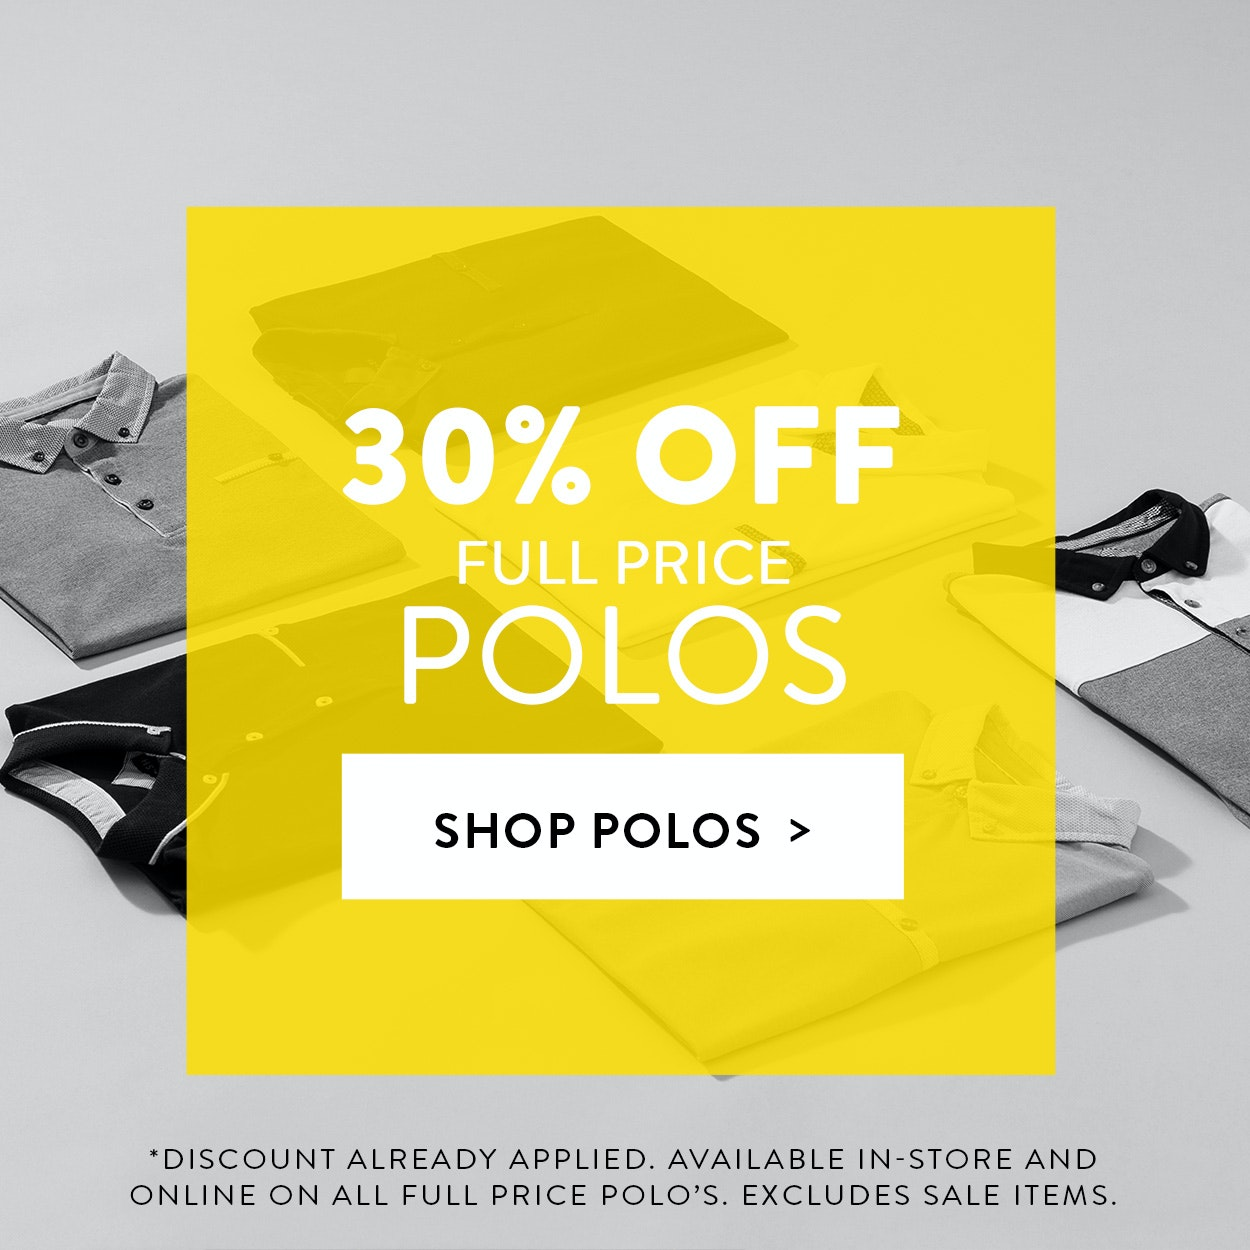 30% Off Full Price Polo Shirts